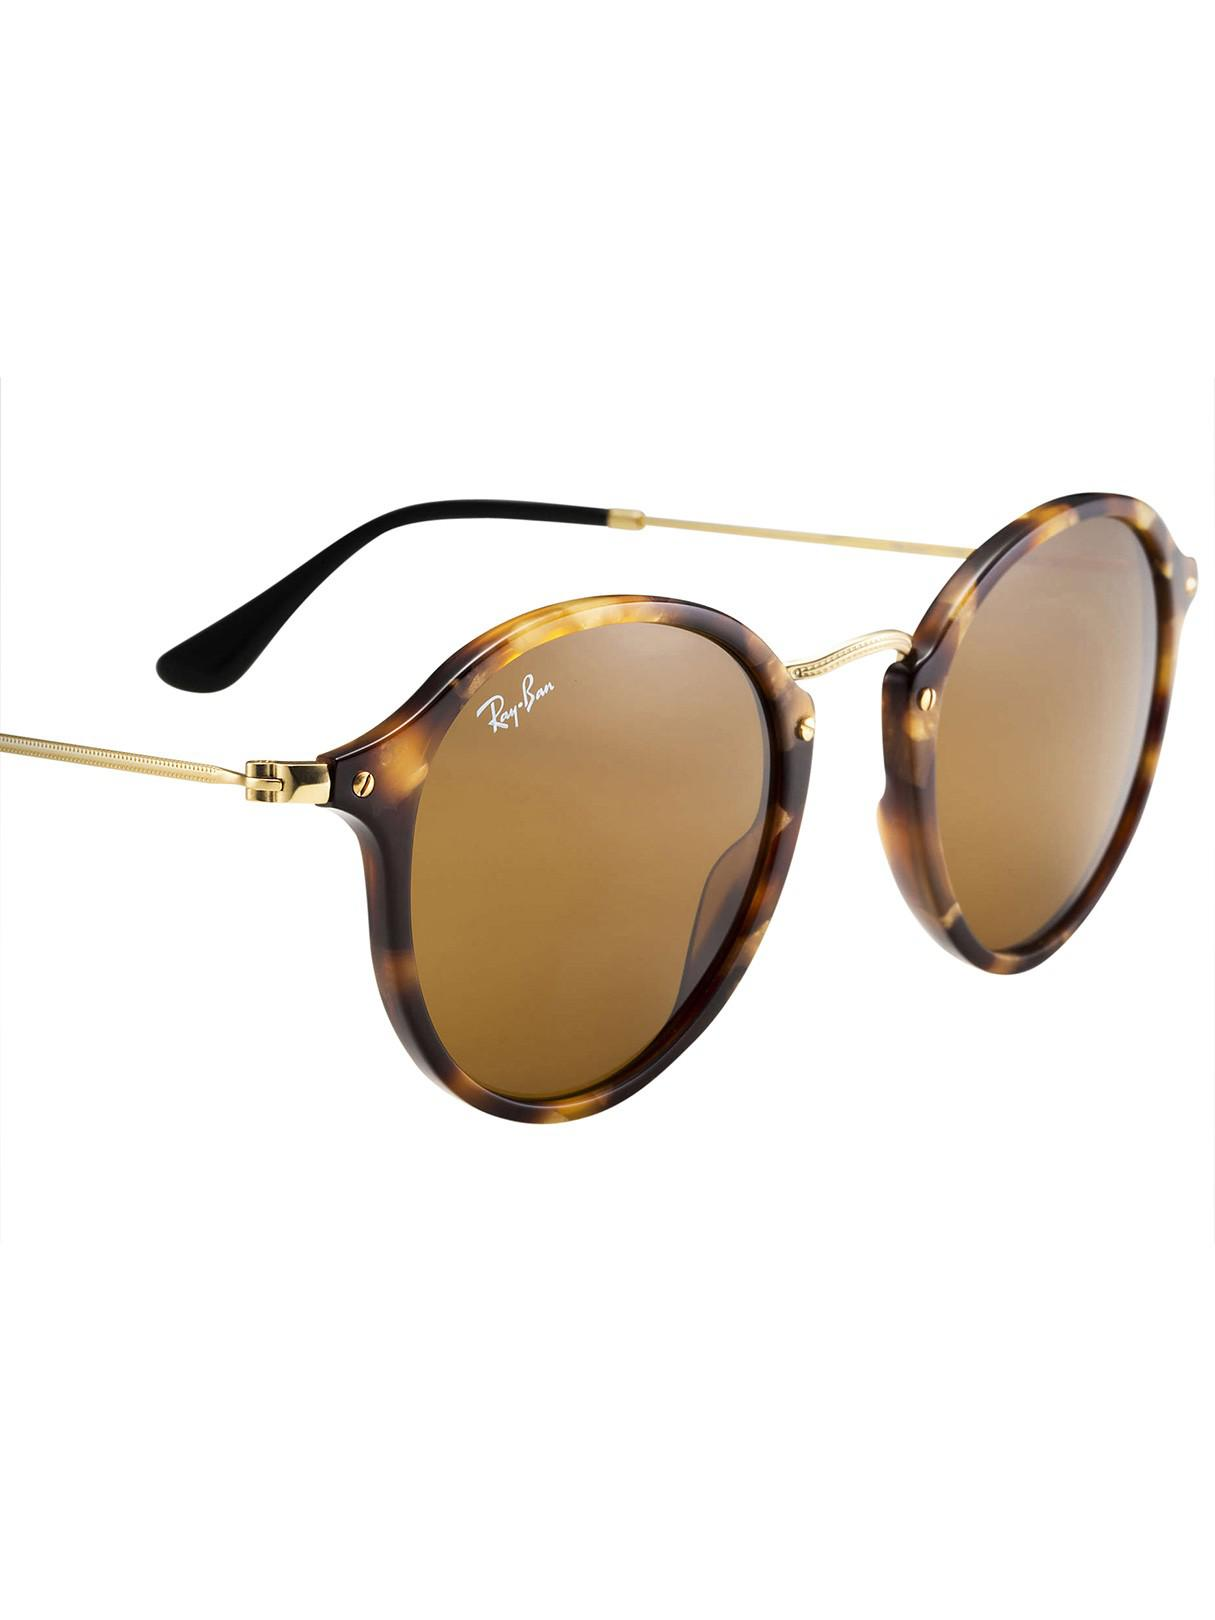 b1d87406e9 Lyst - Ray-Ban Brown Acetate Round Fleck Sunglasses in Brown for Men - Save  47%